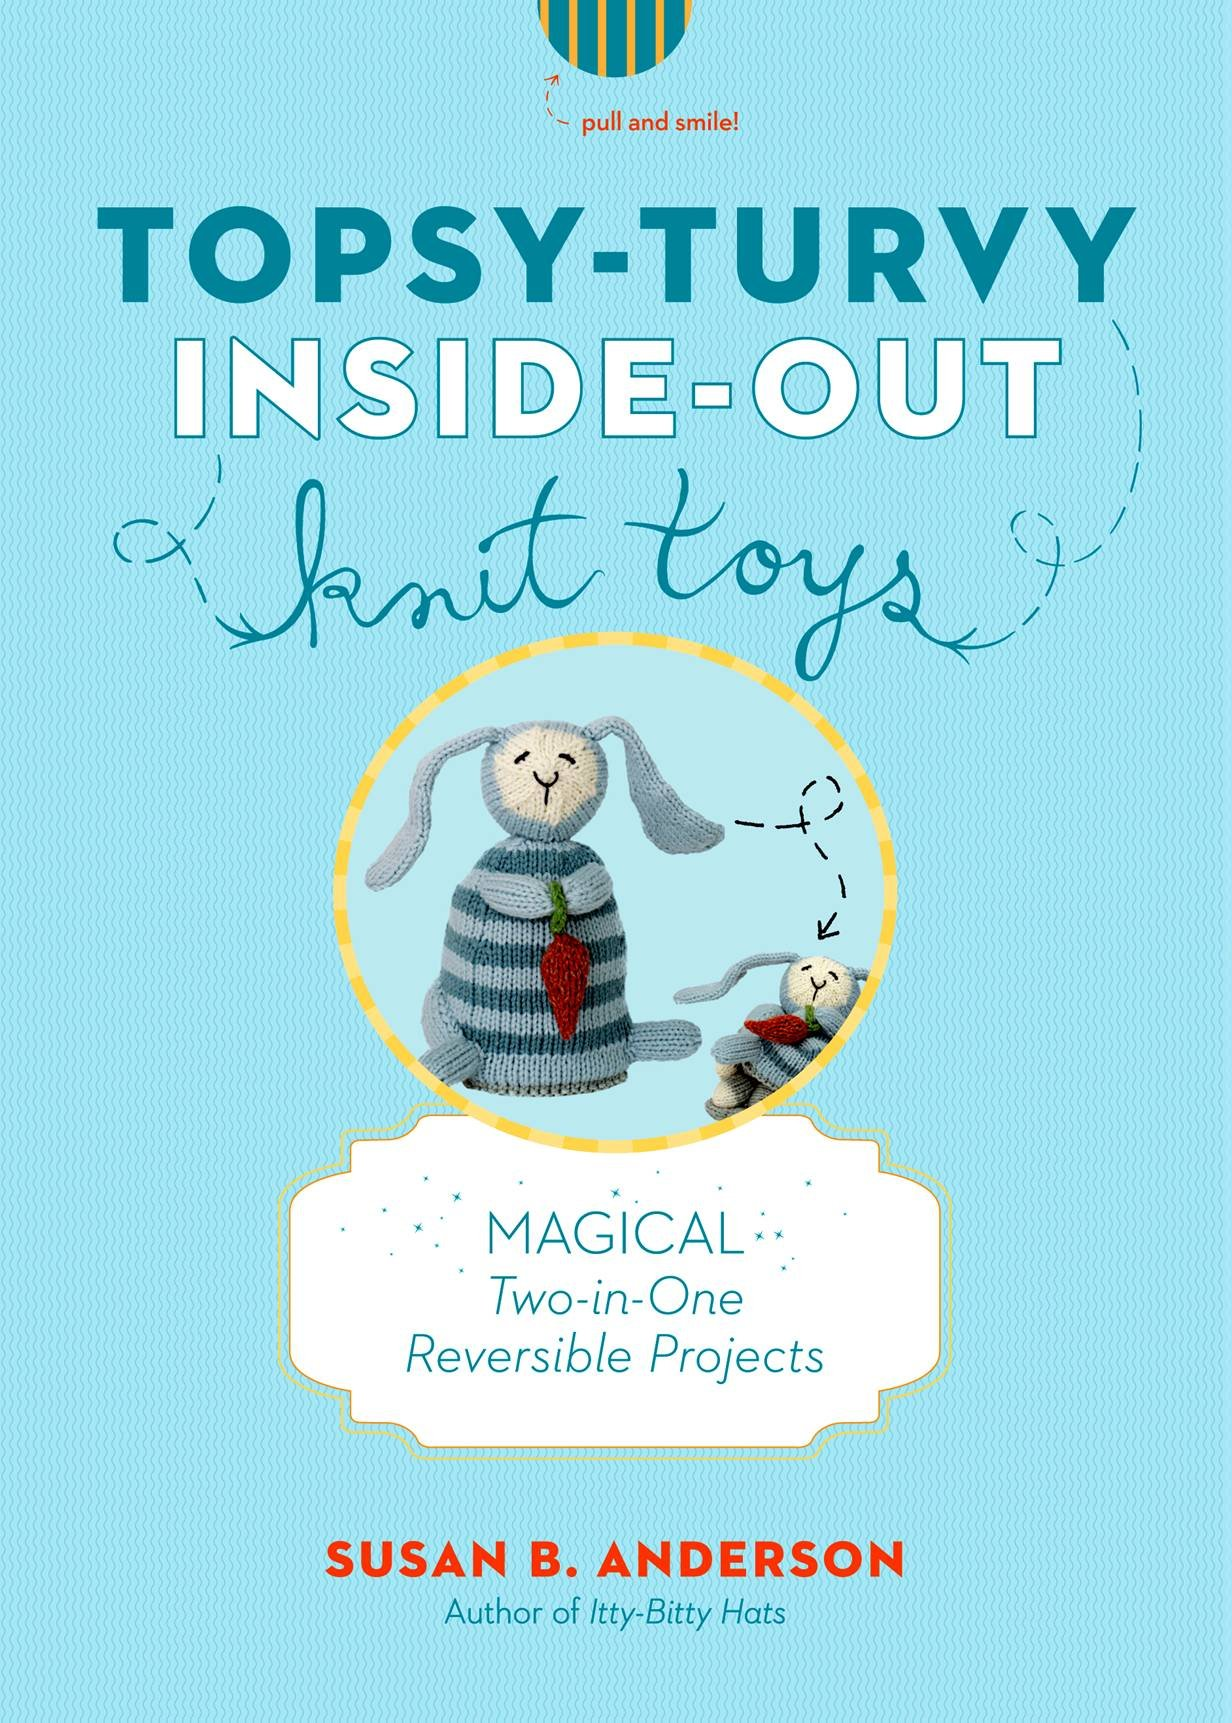 topsy turvy inside out knit toys magical two in one reversible